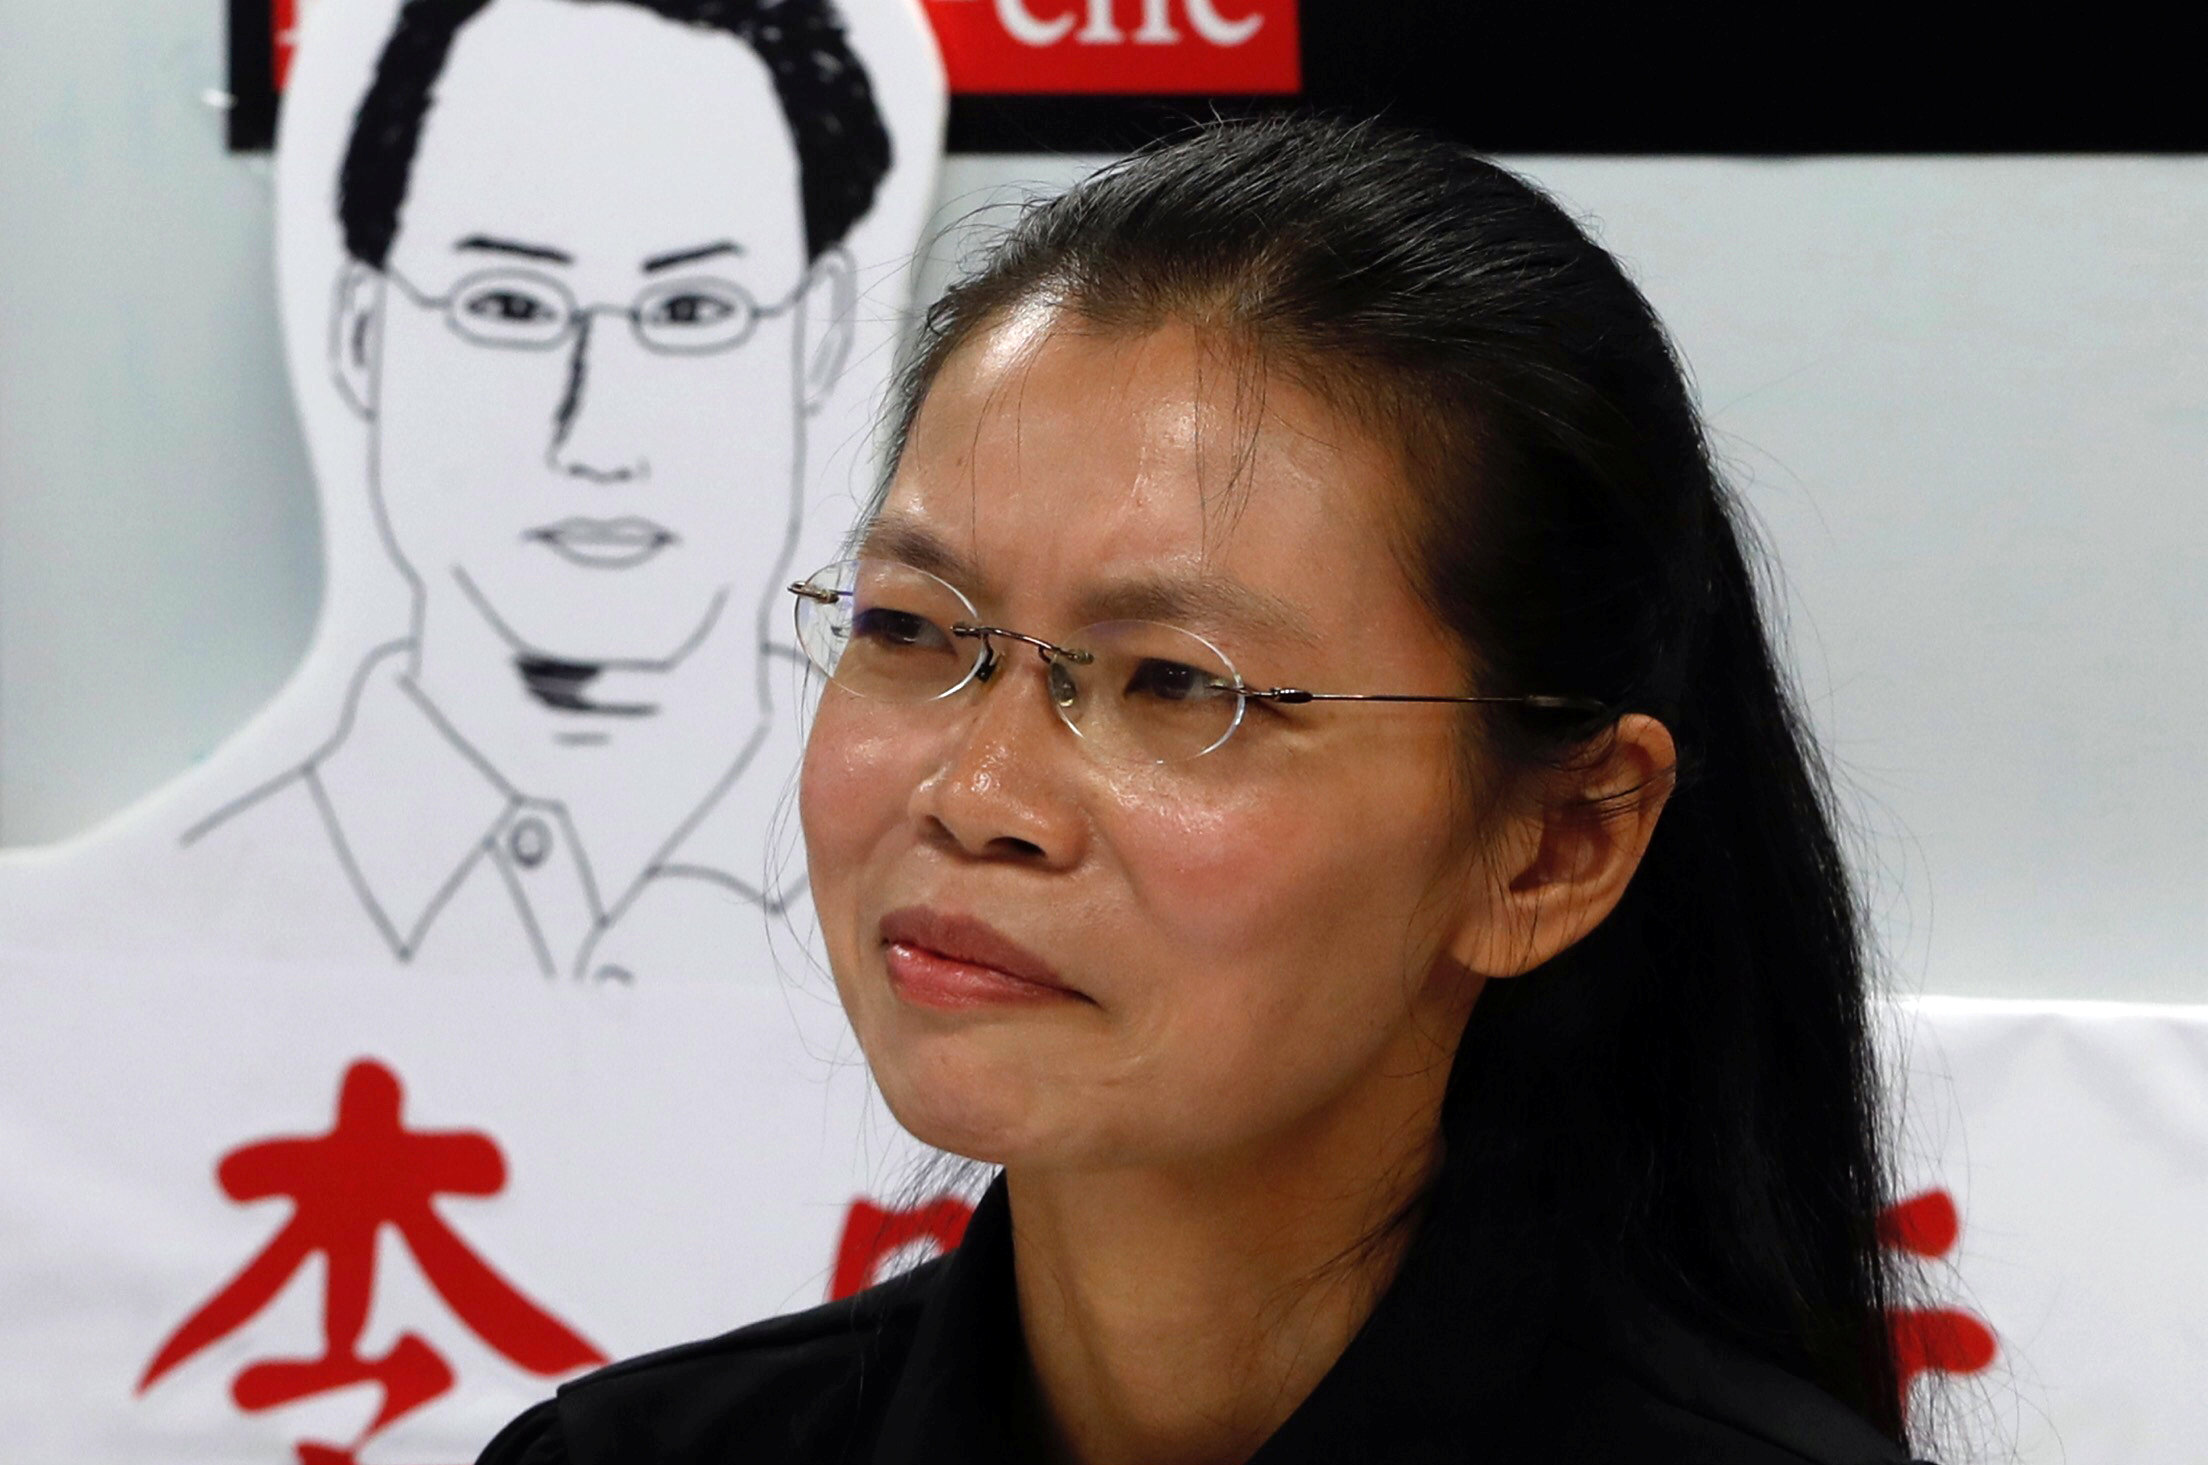 Lee Ching-yu, wife of Taiwan human rights advocate Lee Ming-che, who has been detained in China, speaks to the media a day before departing for her husband's trial, in Taipei, Taiwan on Sept. 9, 2017. (REUTERS/Tyrone Siu)